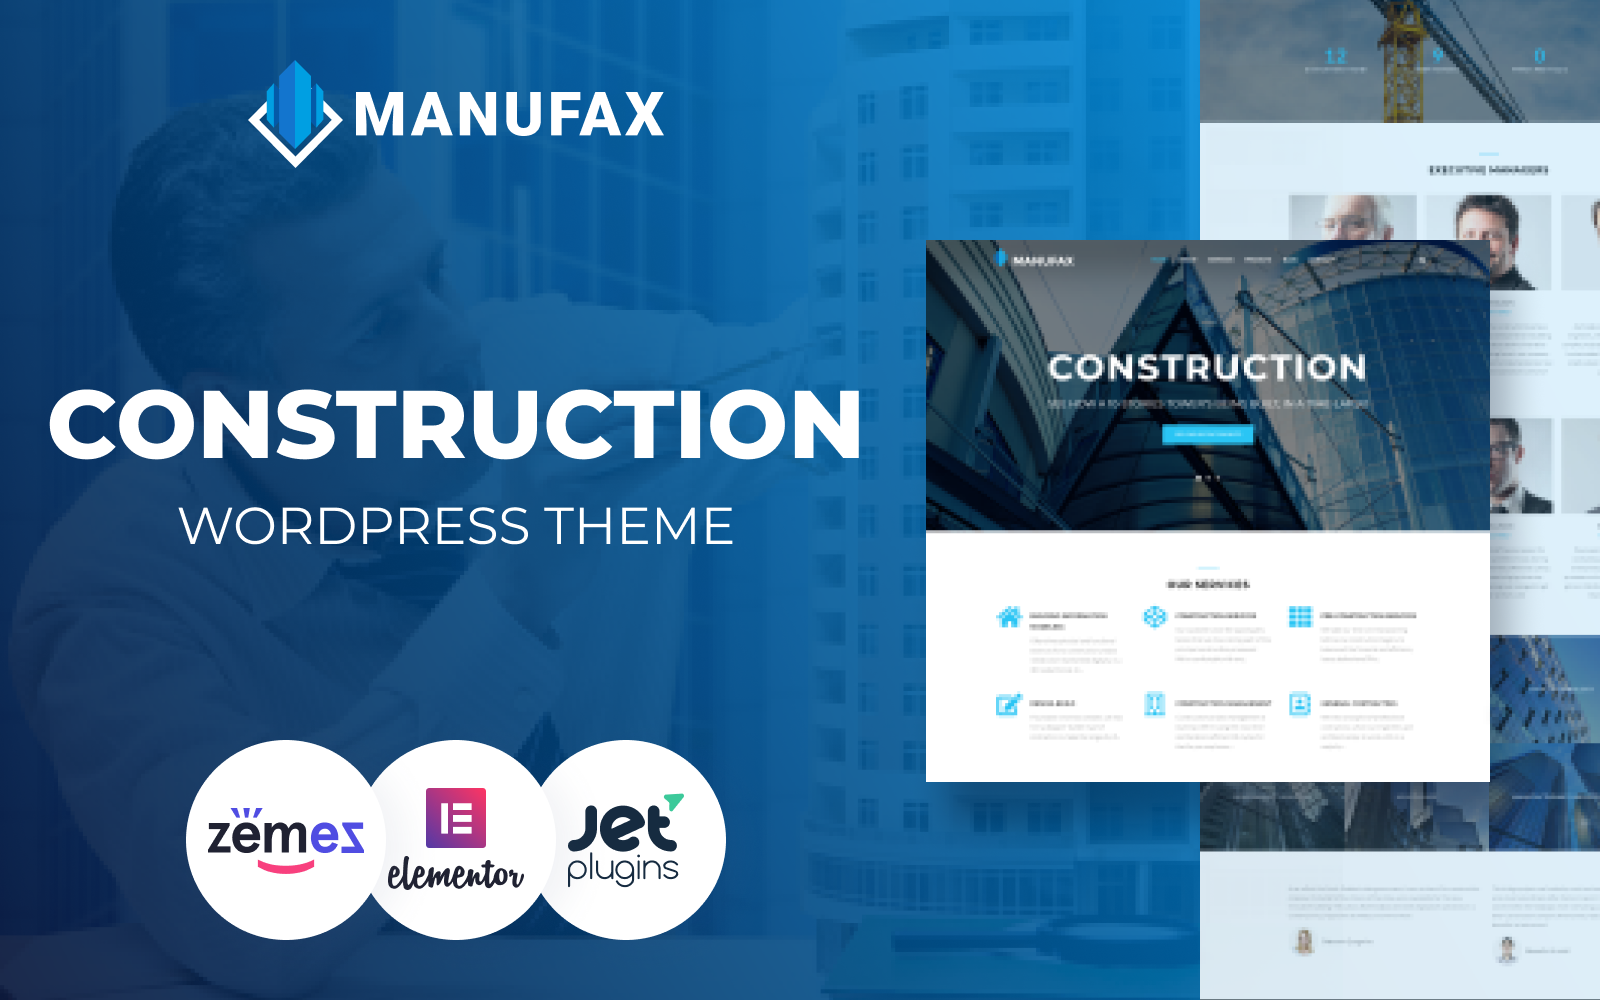 Responsywny motyw WordPress Manufax - Construction Multipurpose Creative Elementor #76018 - zrzut ekranu